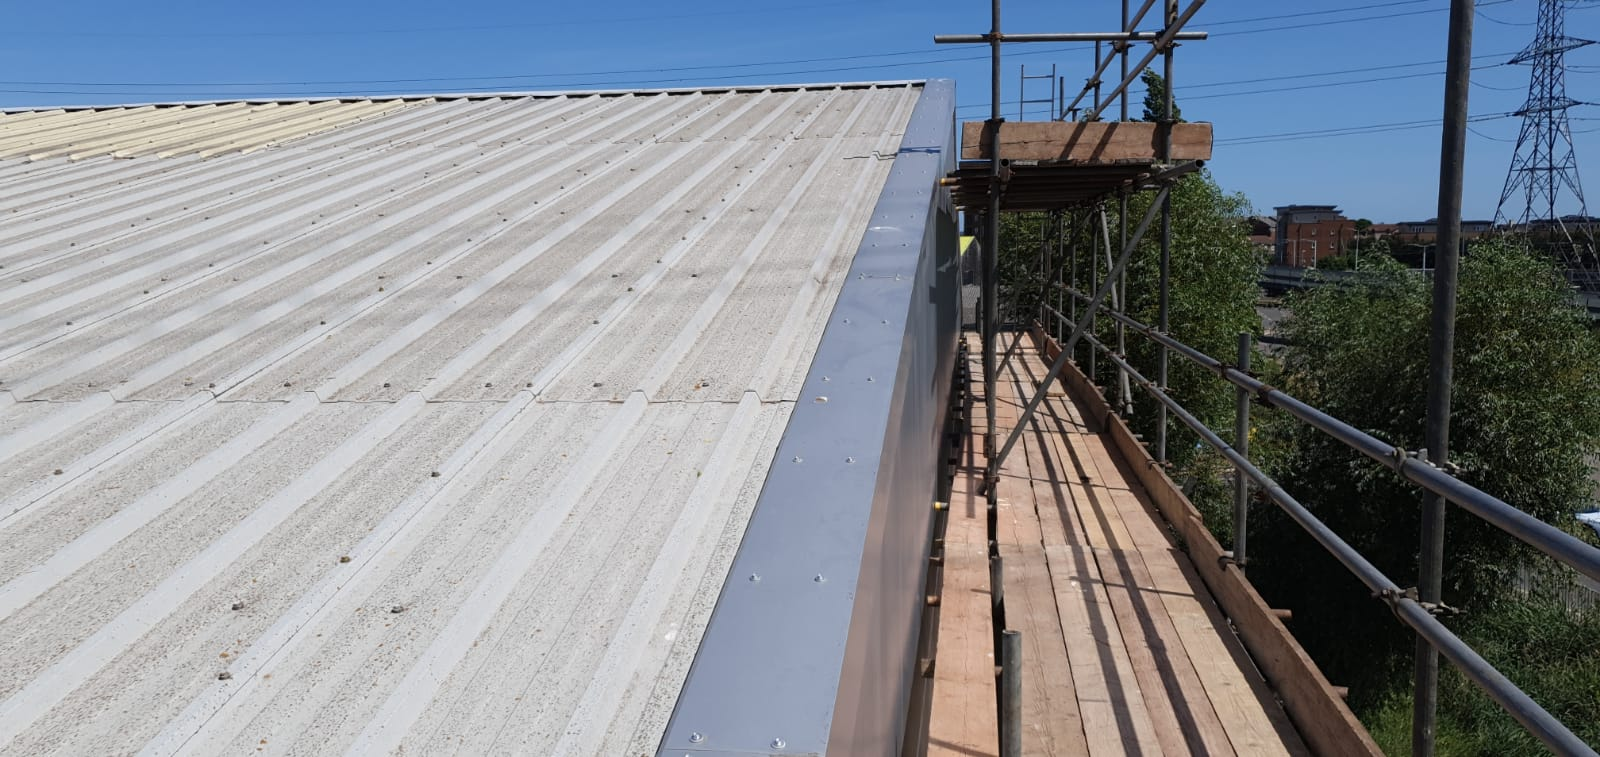 Repair work on the office section of a large Warehouse roof in Rainham, Essex